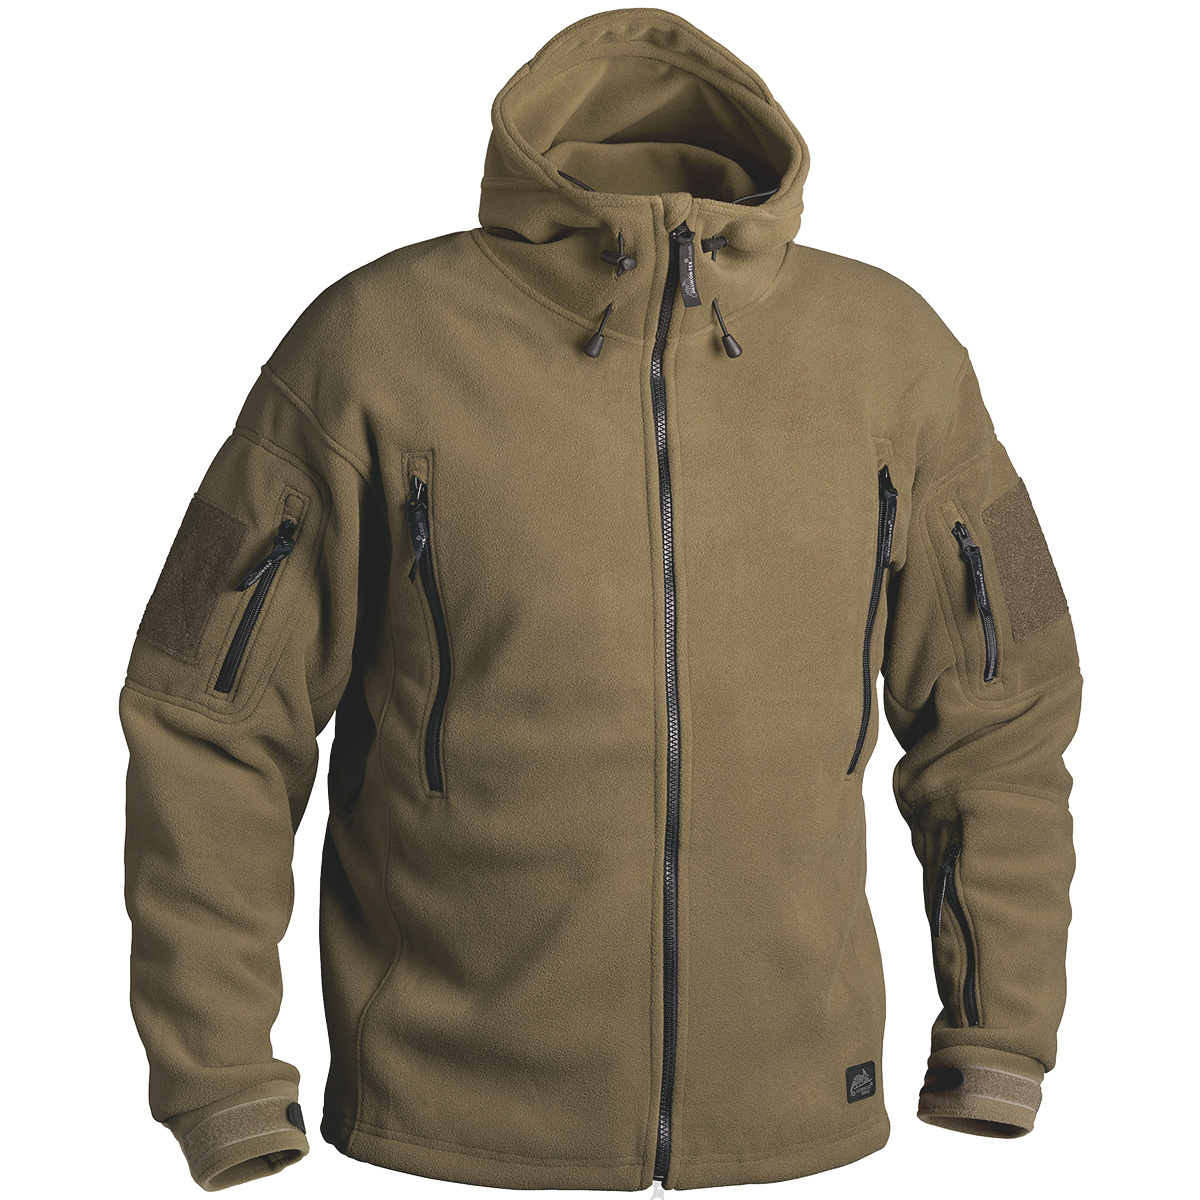 Details about HELIKON TACTICAL PATRIOT MENS HOODED FLEECE ARMY POLAR JACKET  COYOTE TAN S-XXL 8103ebe90d6